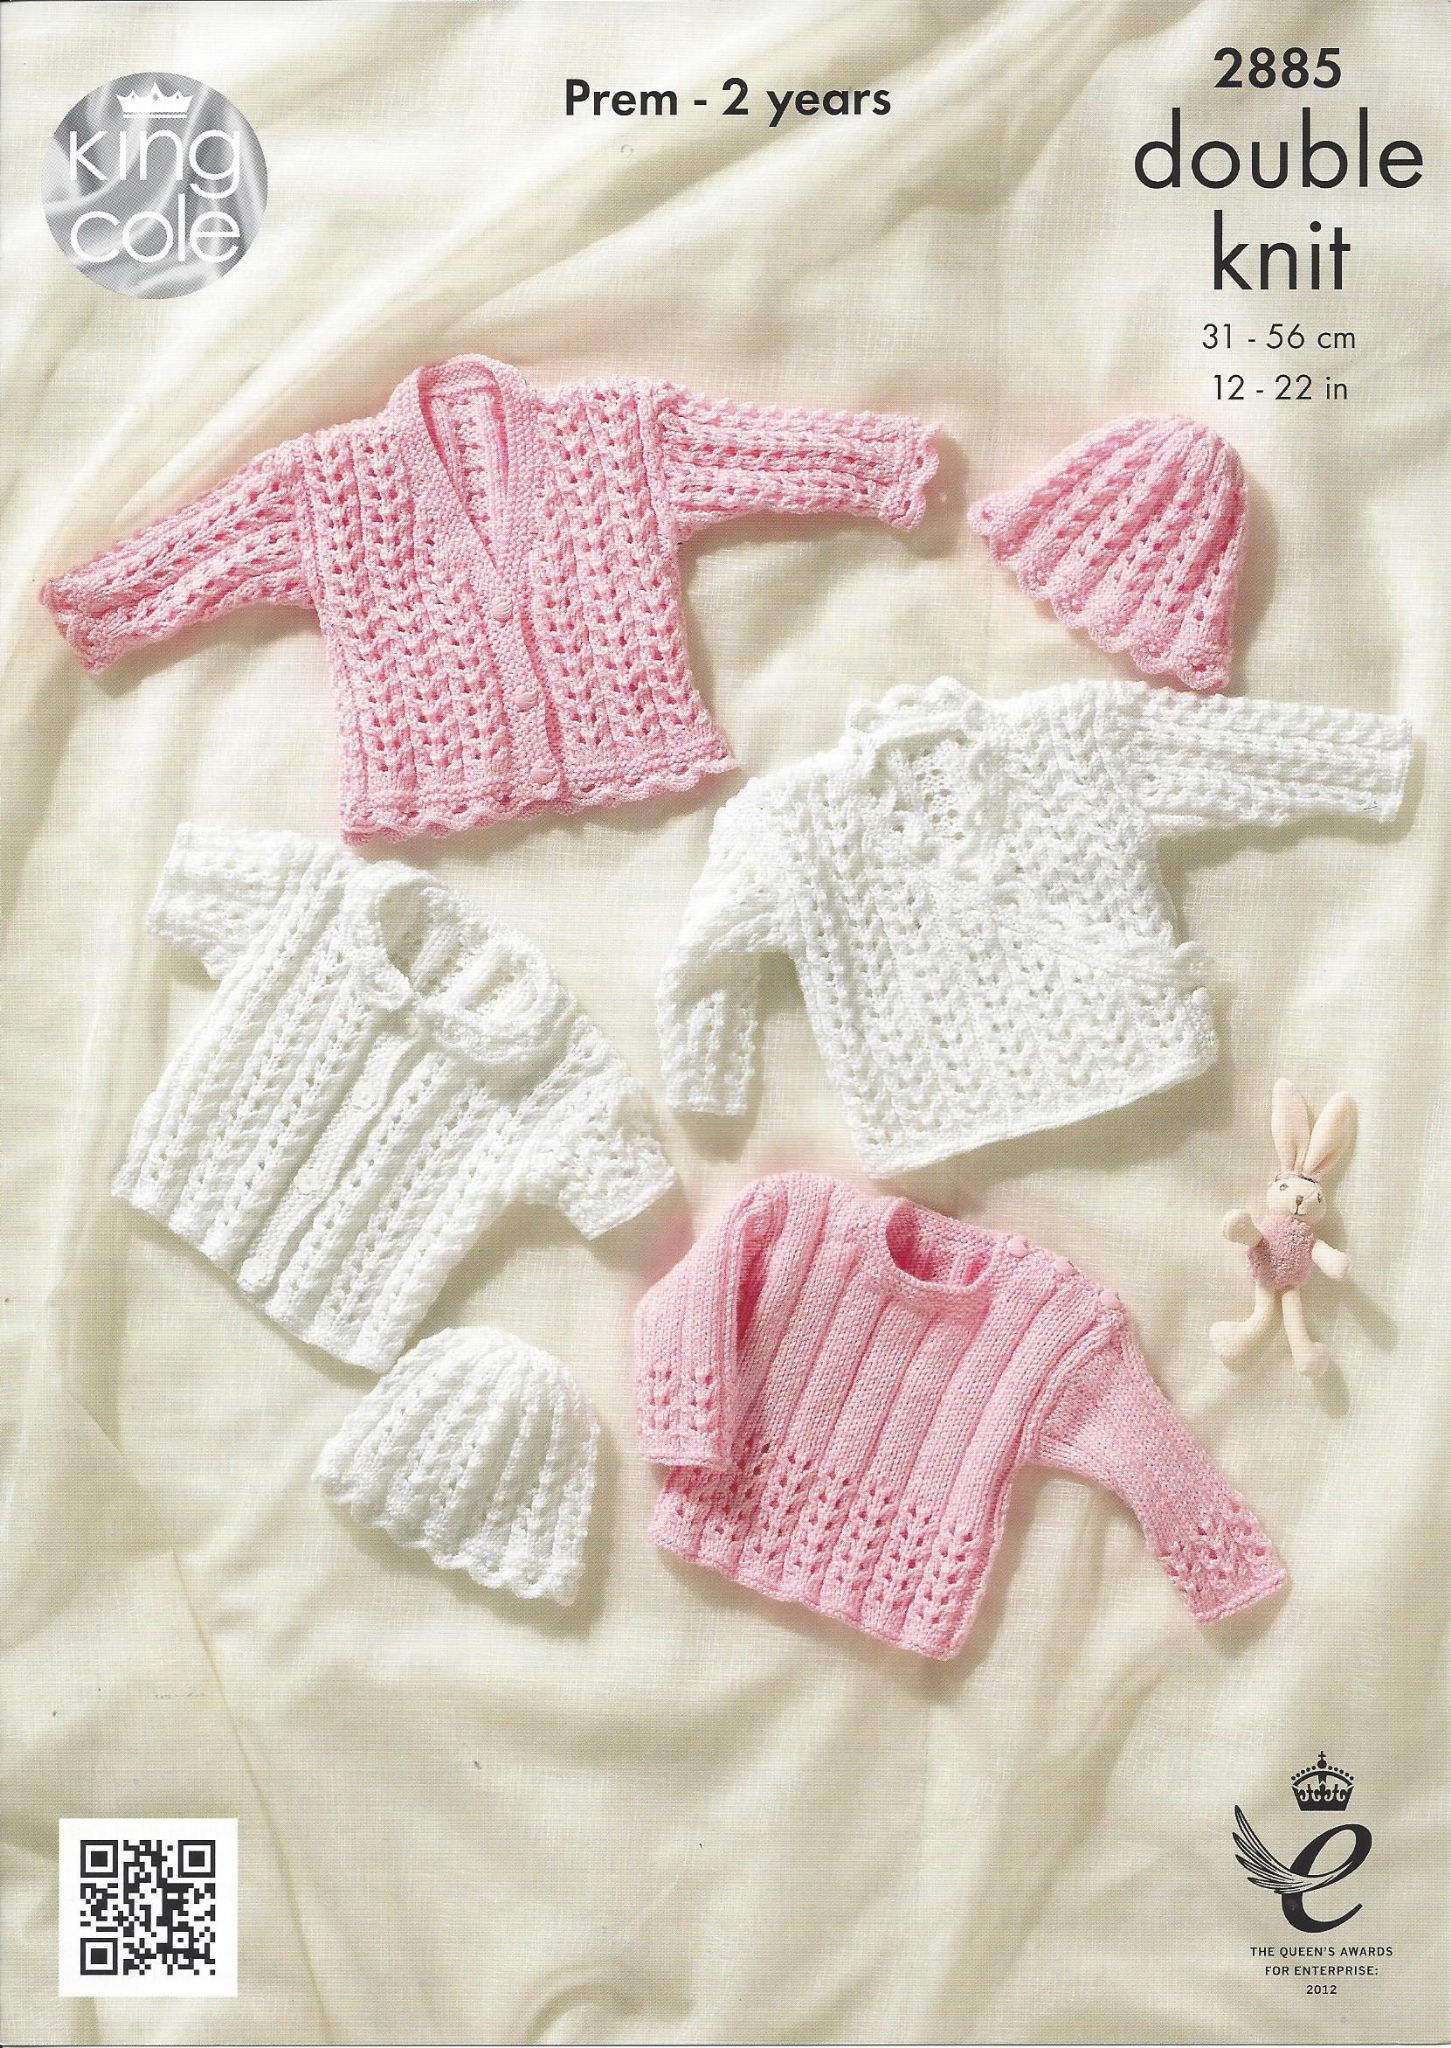 King Cole Baby DK Knitting Pattern - 2885 Cardigans Sweater & Hat